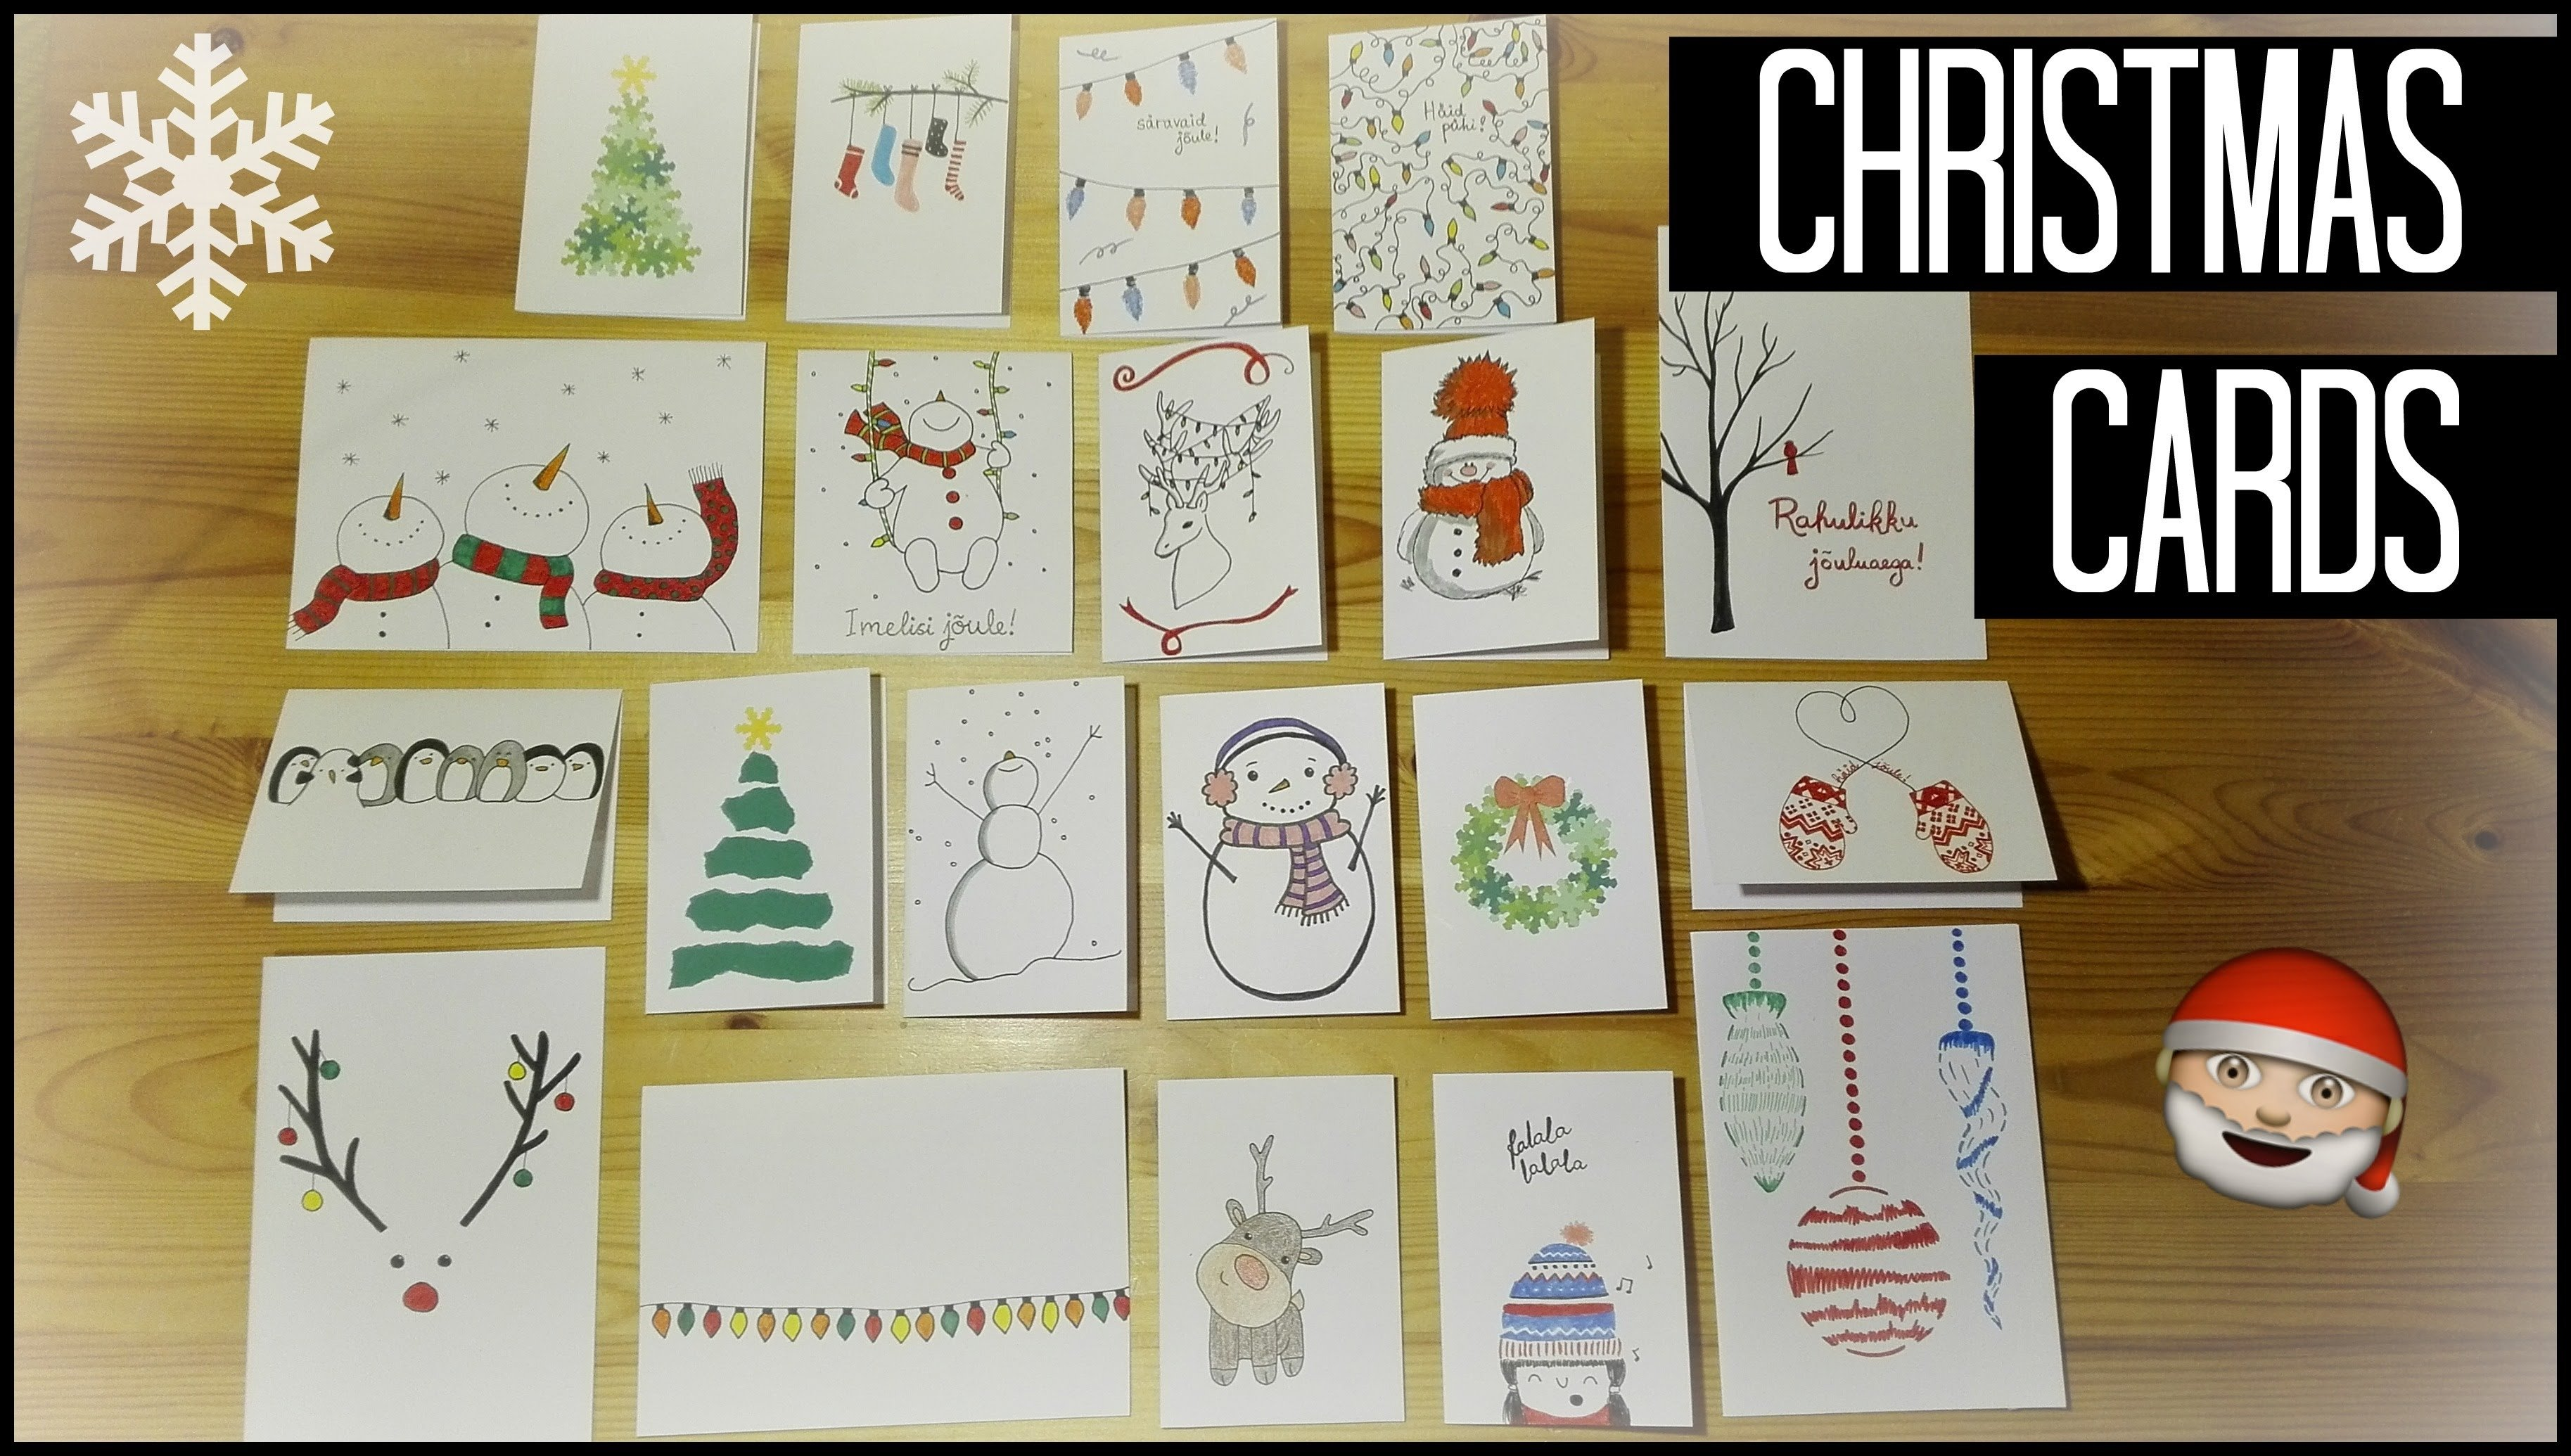 10 Fantastic Picture Ideas For Christmas Cards 20 diy christmas card ideas my christmas cards for 2015